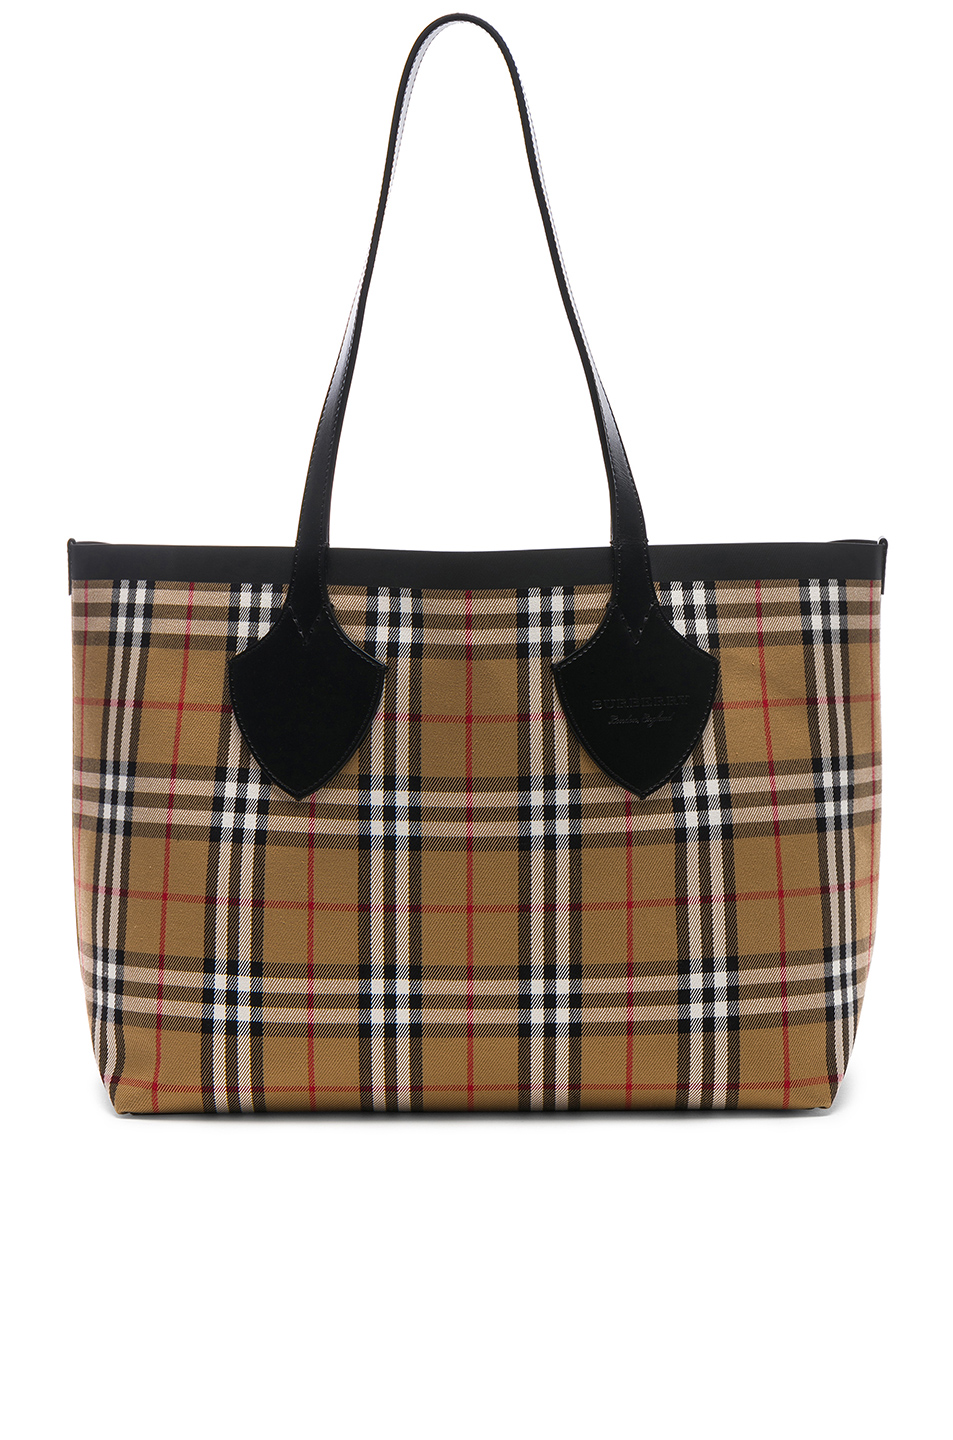 36f46e6b5c Burberry Reversible Vintage Check Tote; Burberry Reversible Vintage Check  Tote ...